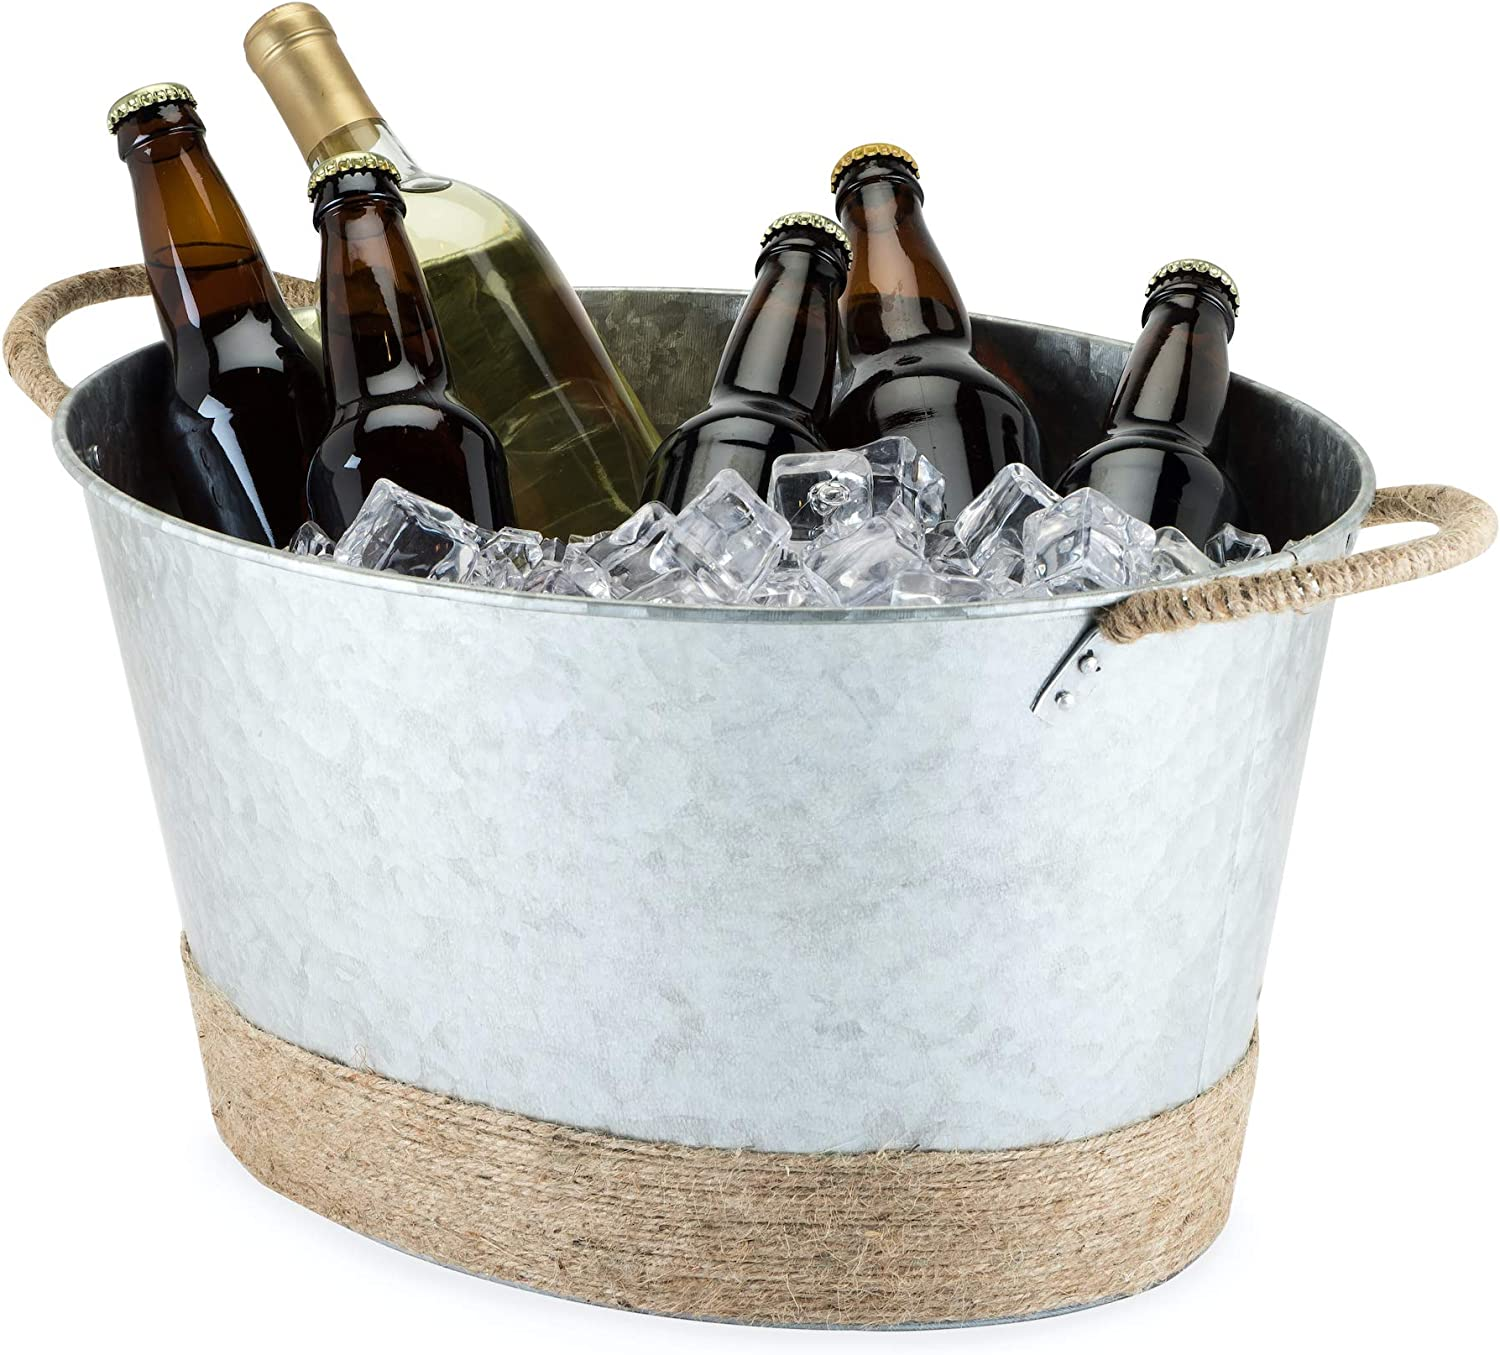 Twine Seaside Jute Rope Wrapped Farmhouse Galvanized Ice Metal Tub, Wine, Beer Bottle Bucket, 4.5 Gallons